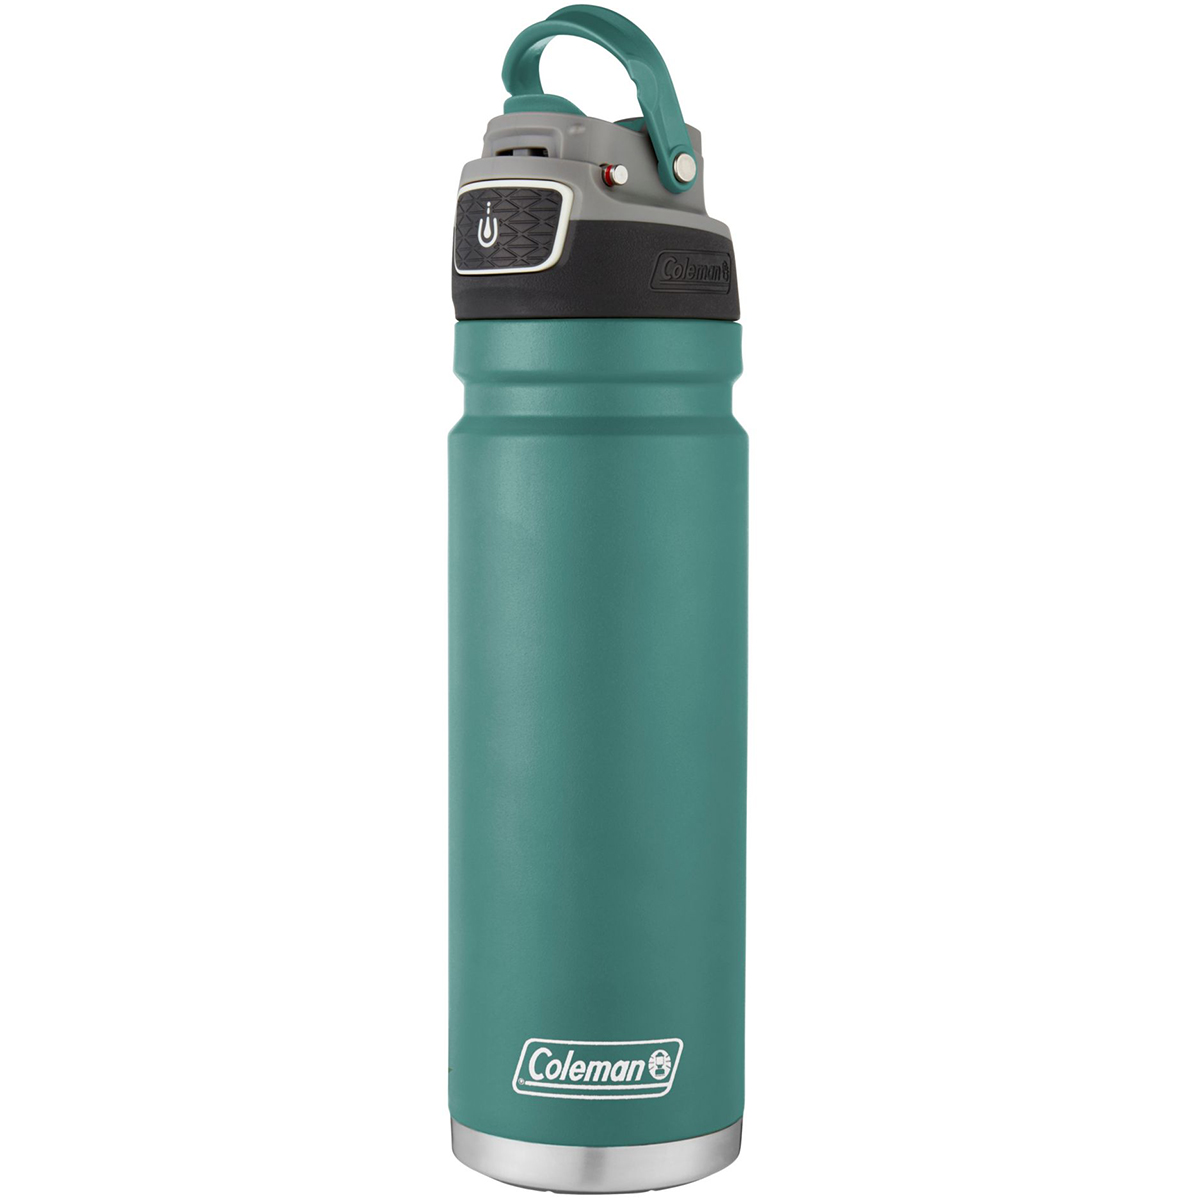 Coleman-24-oz-Free-Flow-Autoseal-Insulated-Stainless-Steel-Water-Bottle thumbnail 21